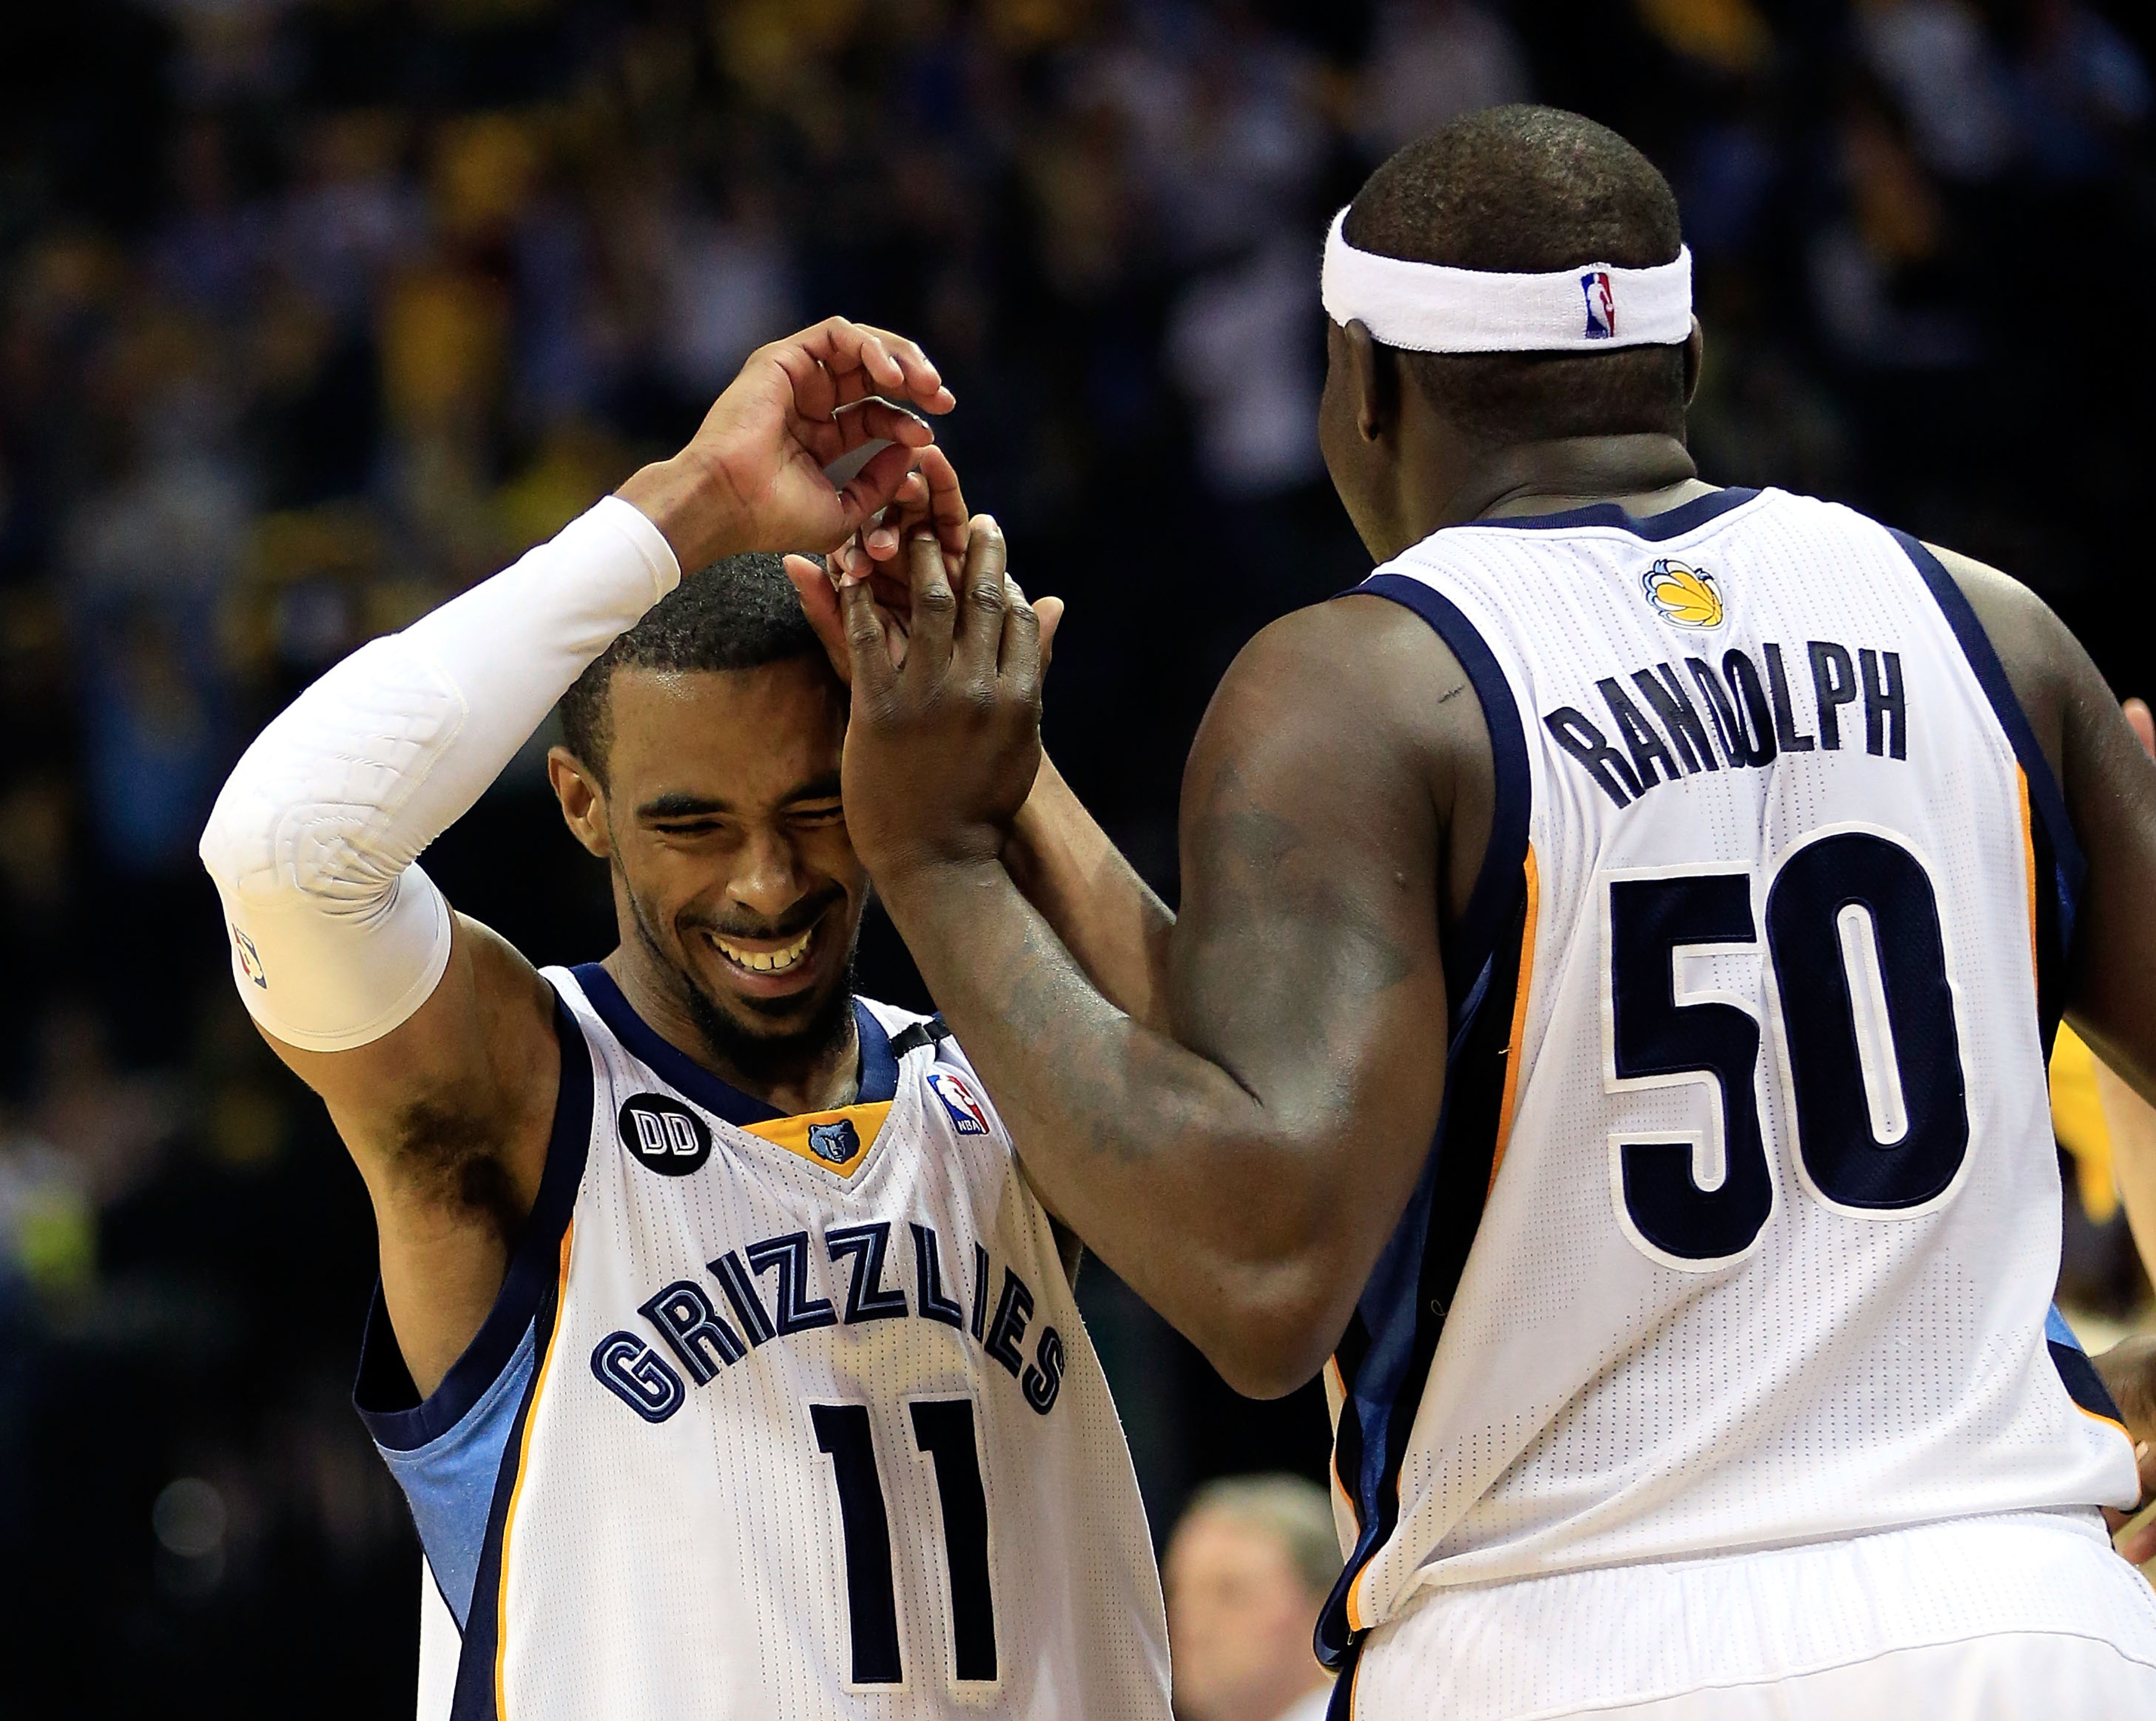 Grizzlies vs. Thunder Game 5, NBA Playoffs 2013: Zach Randolph, Grizzlies advance with 88-84 win